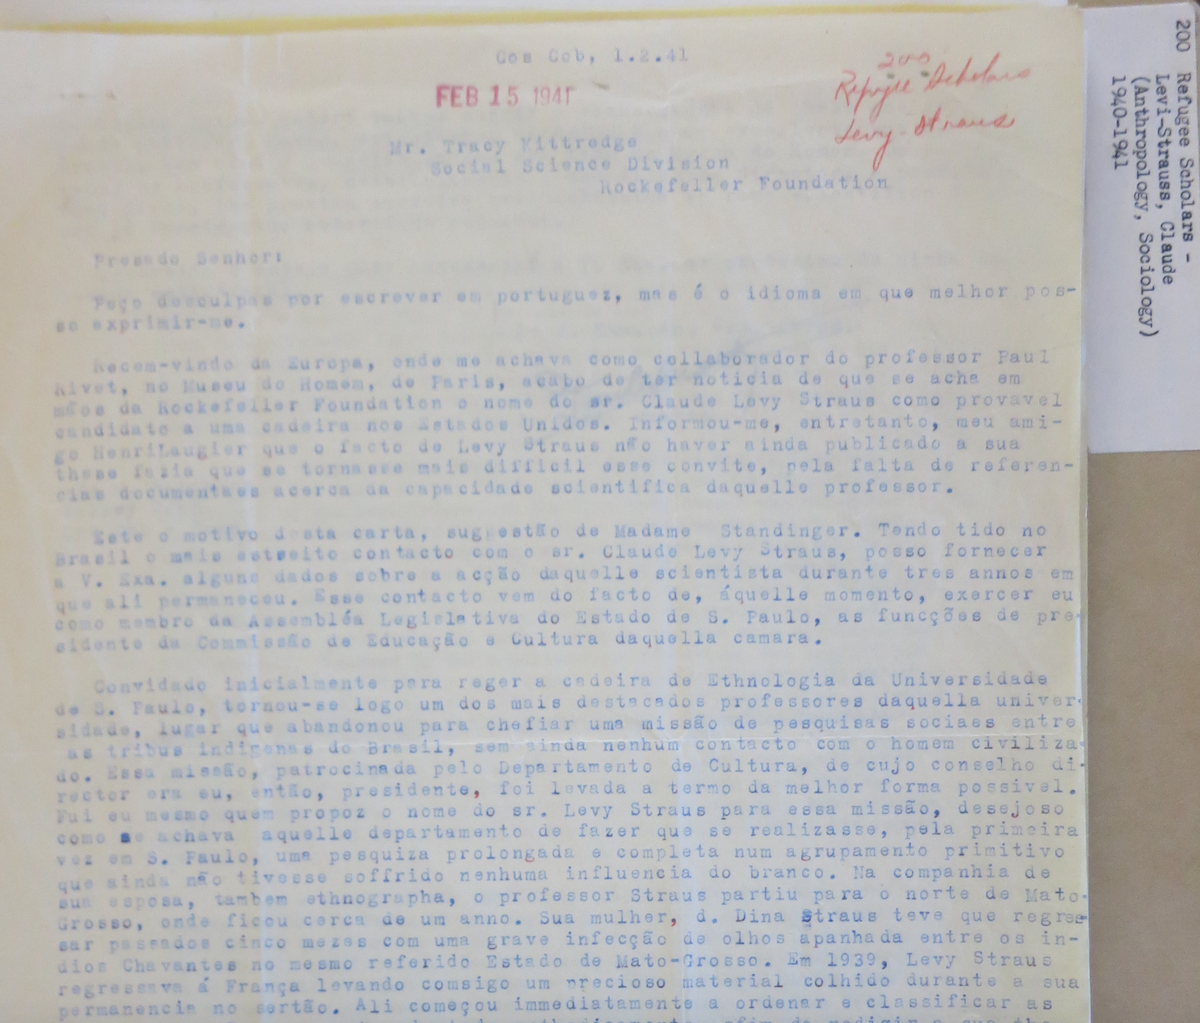 Image of mimeographed letter. Transcription below.